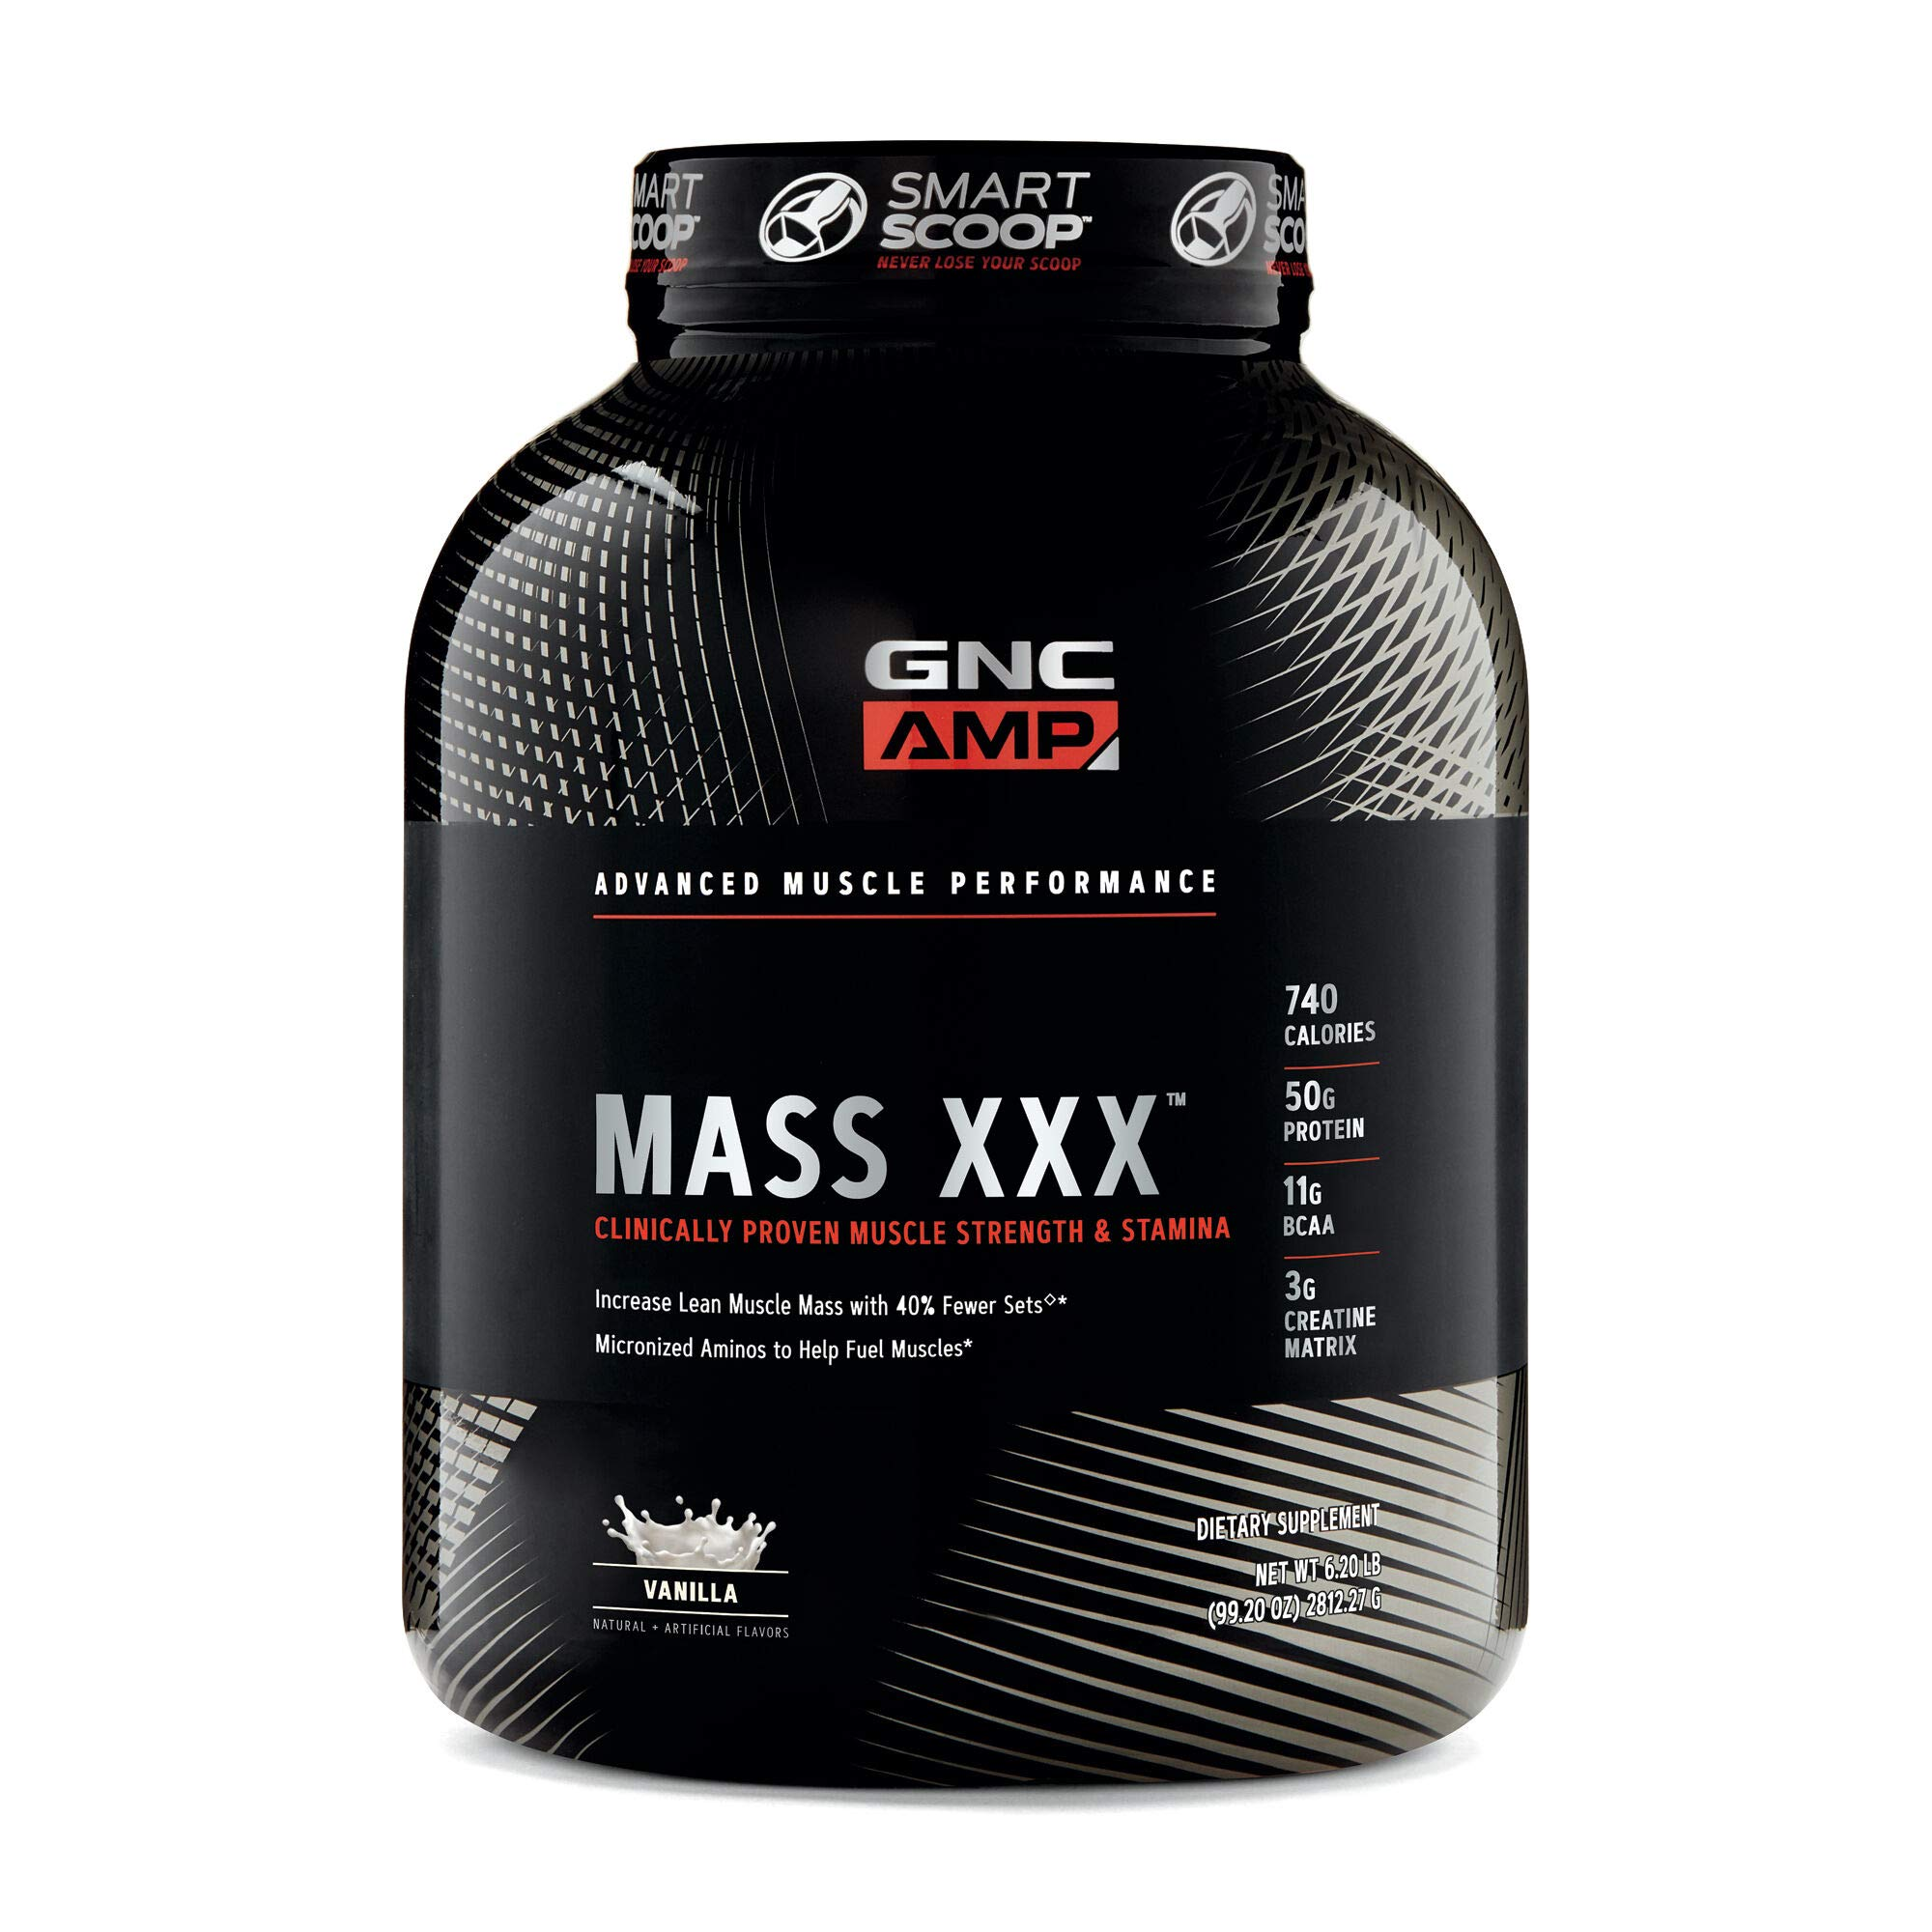 GNC AMP Mass XXX, Vanilla, 6.2 lbs, Supports Muscle Protein Synthesis by GNC